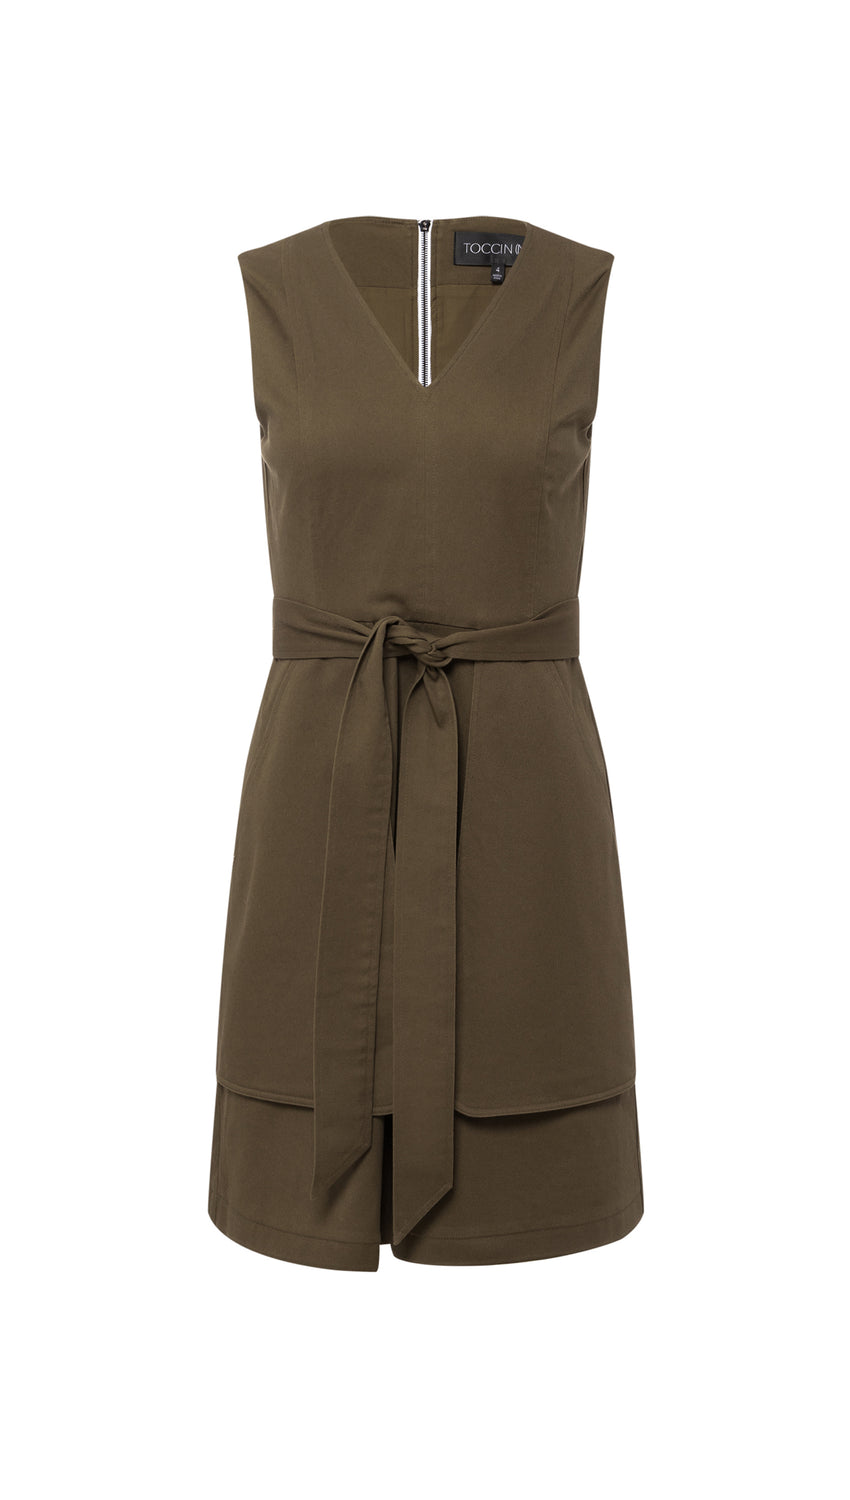 A-Line Pocket Dress in Olive